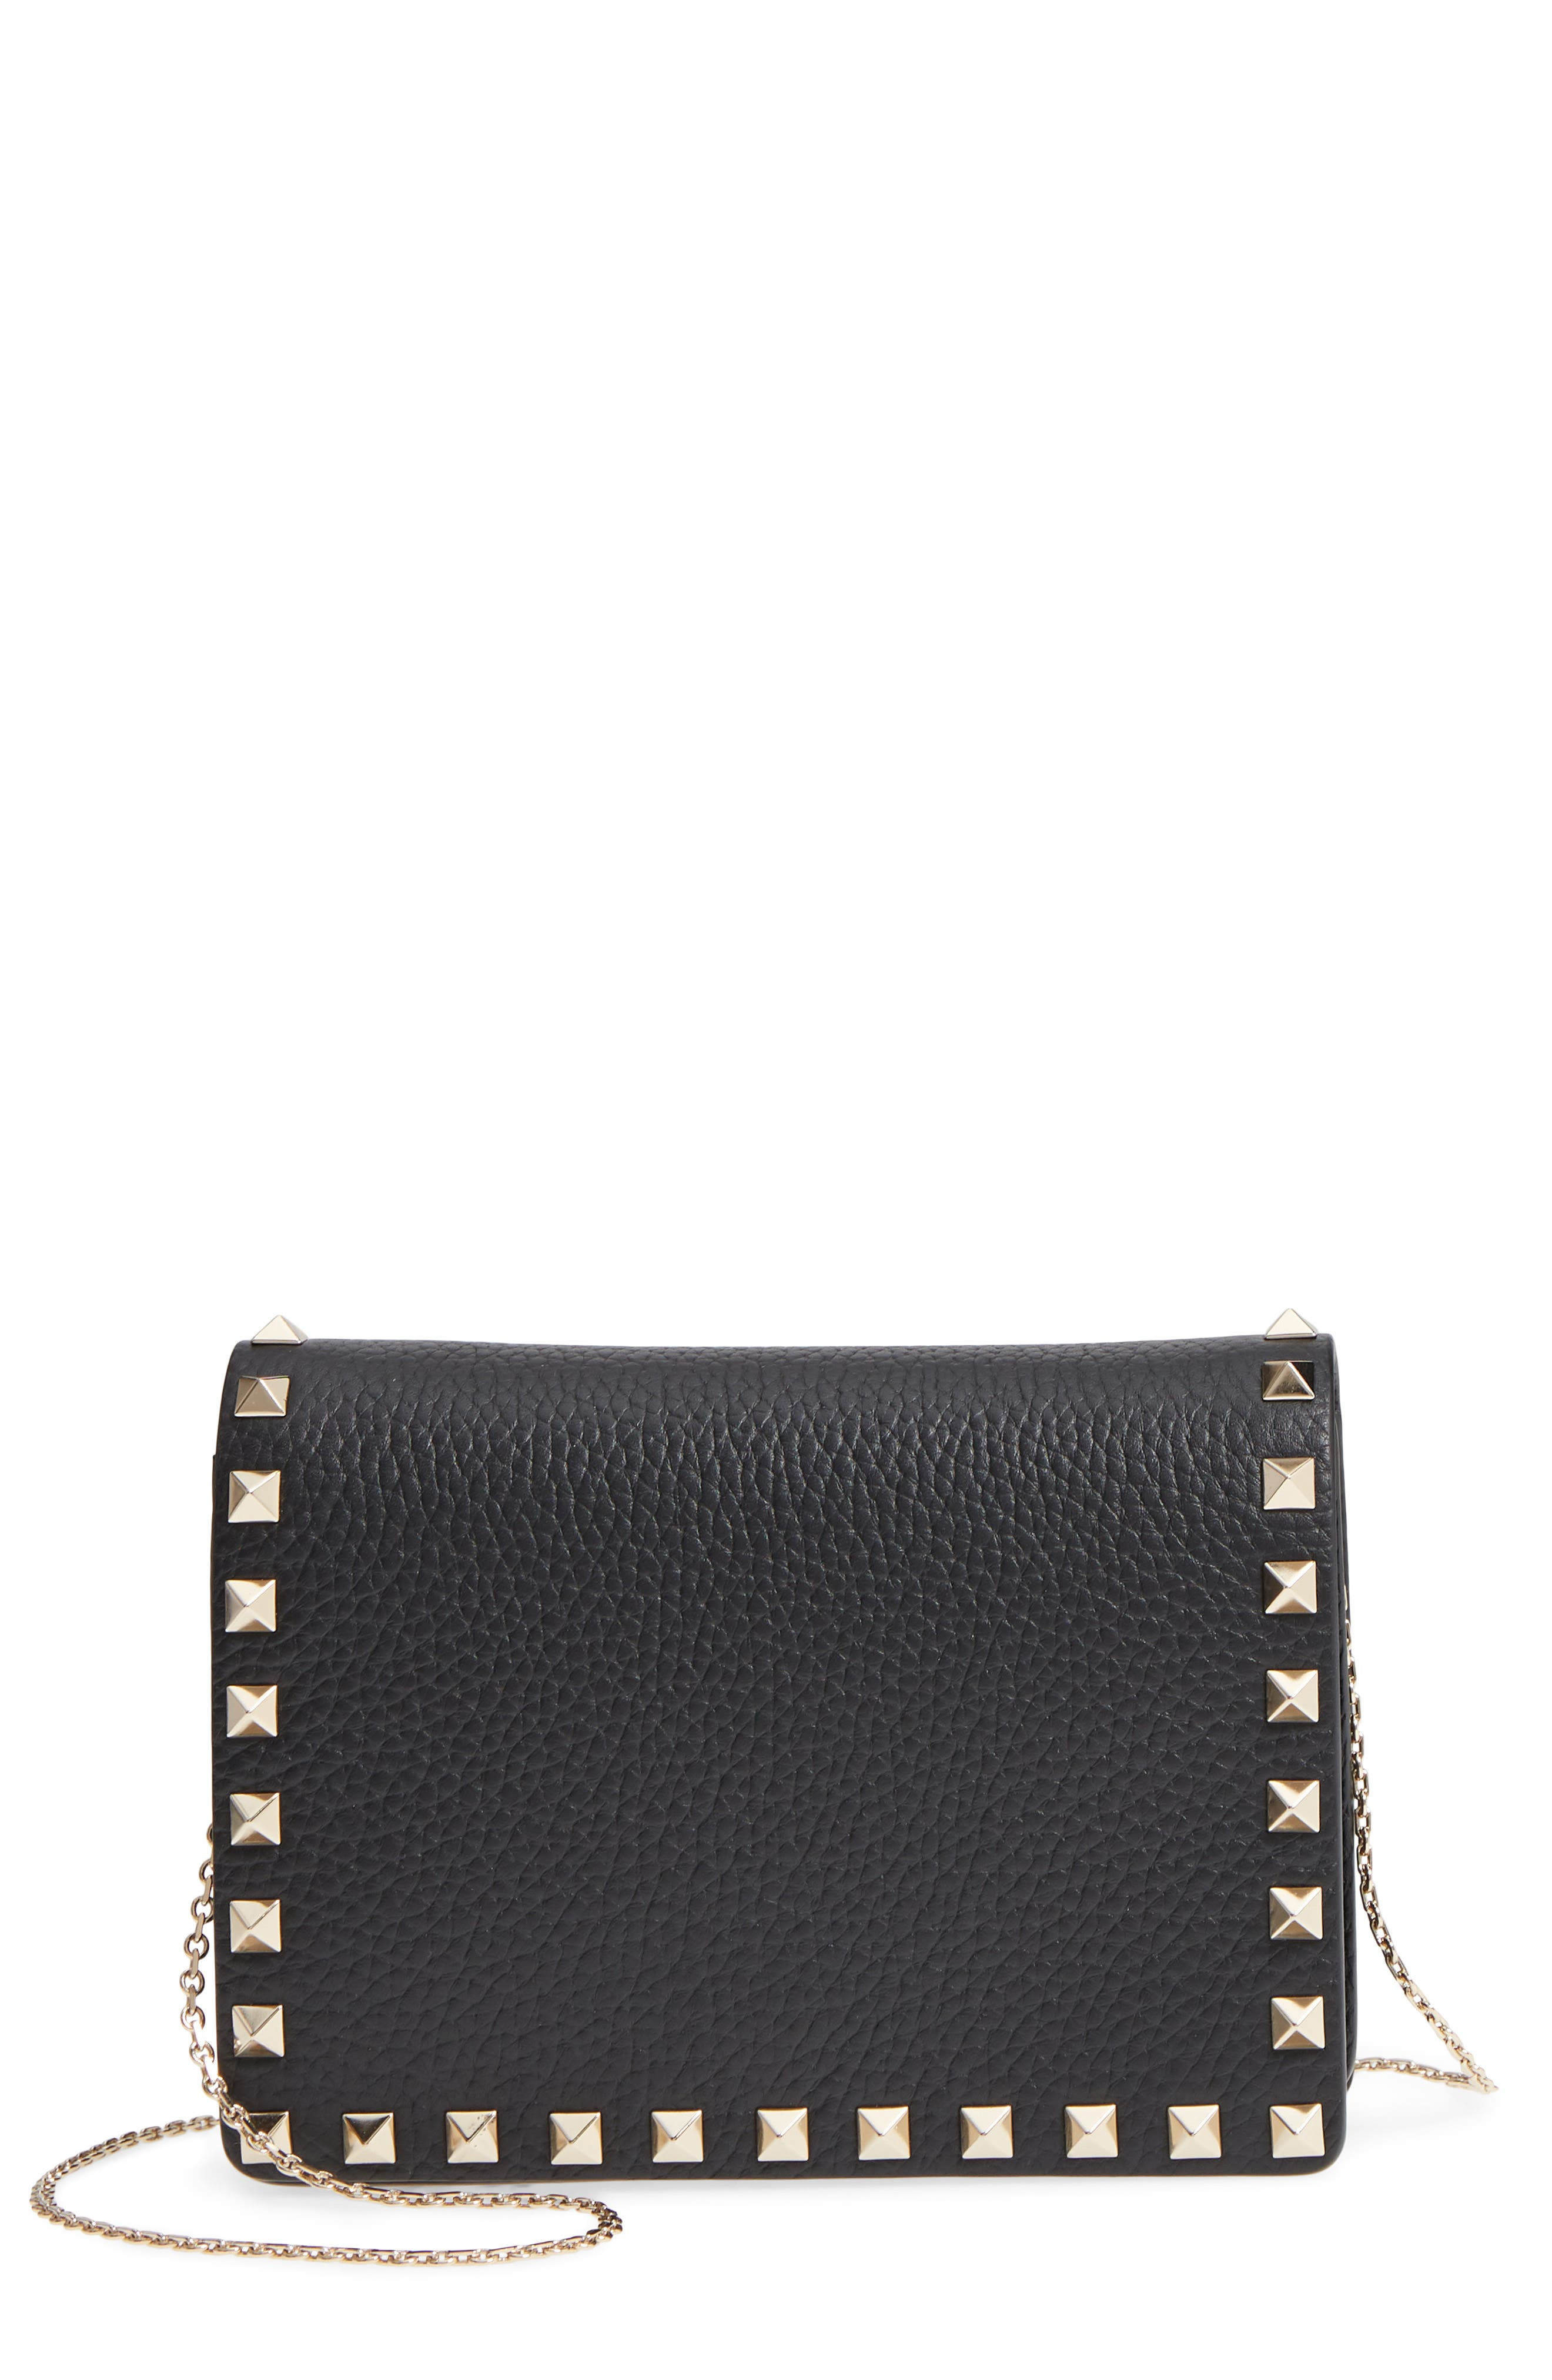 VALENTINO GARAVANI, Rockstud Leather Pouch Wallet on a Chain, Main thumbnail 1, color, NERO/ GOLD